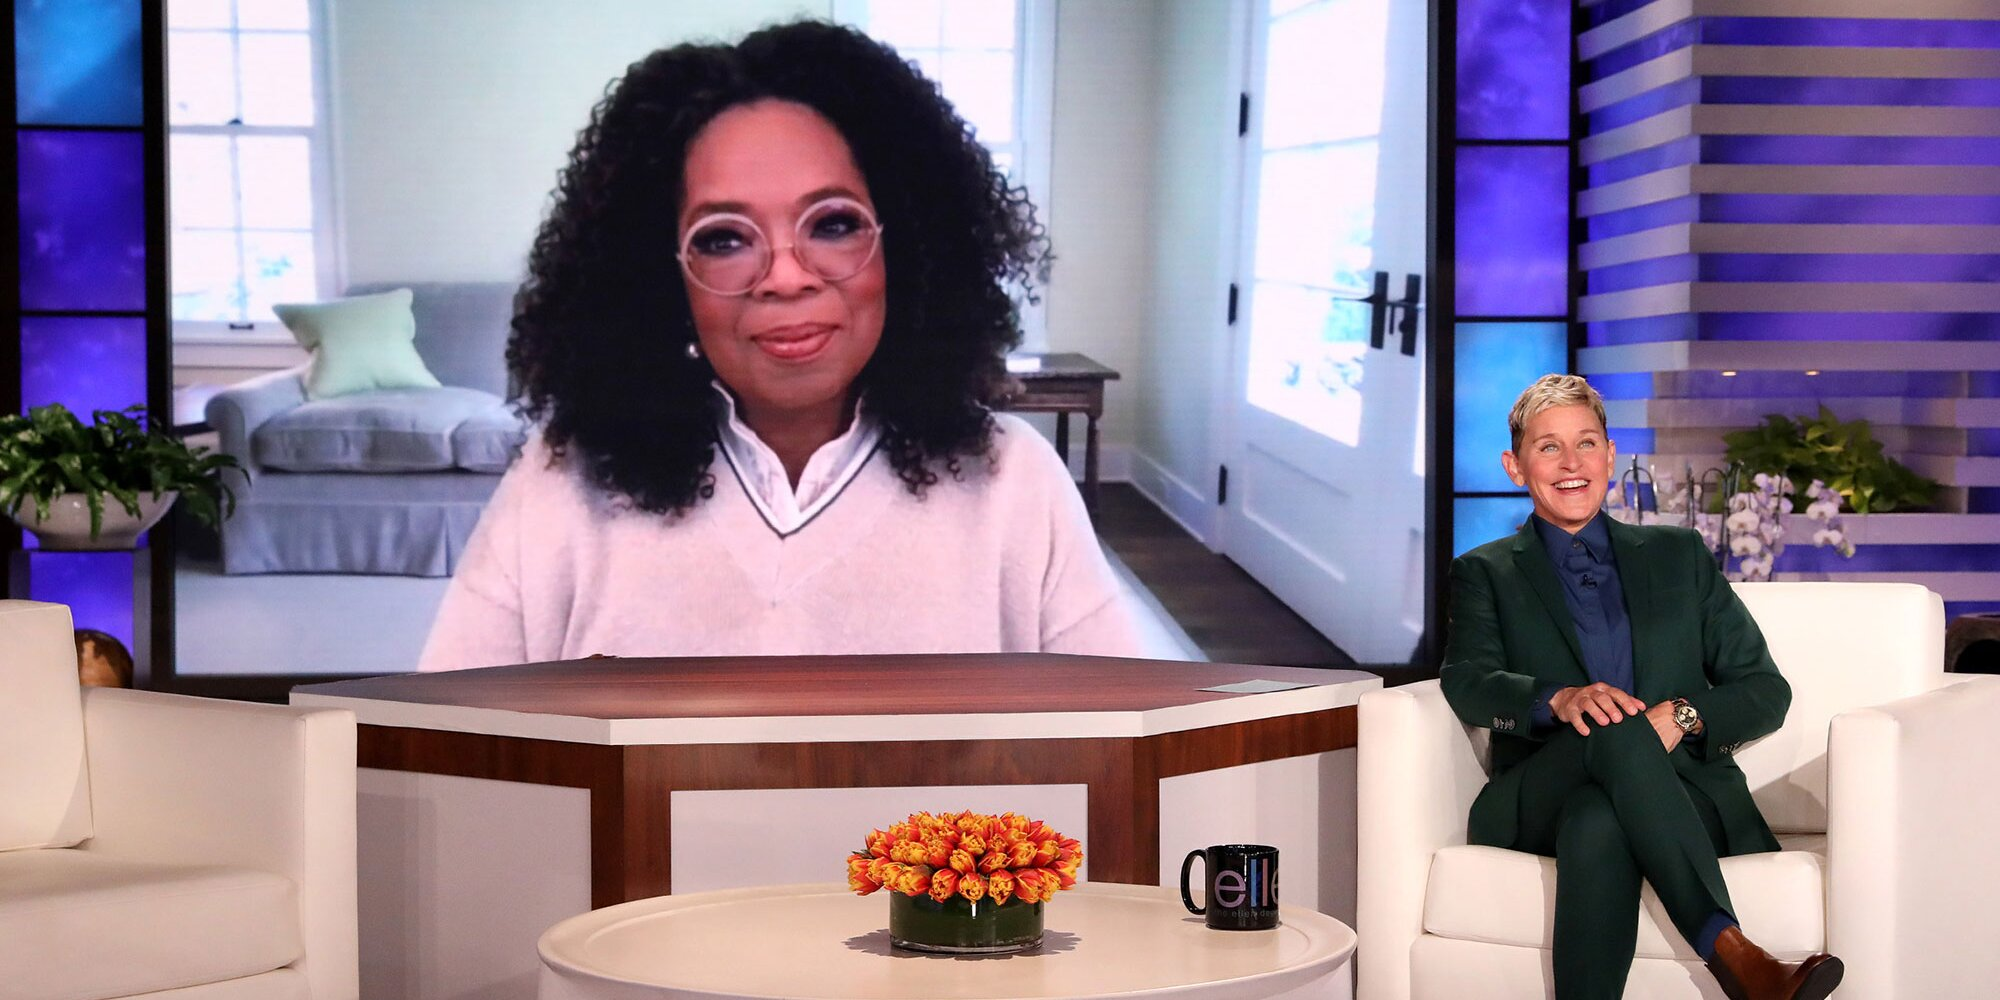 Oprah says she's proud of Ellen for trusting her instinct: 'Only you know when it is time'.jpg